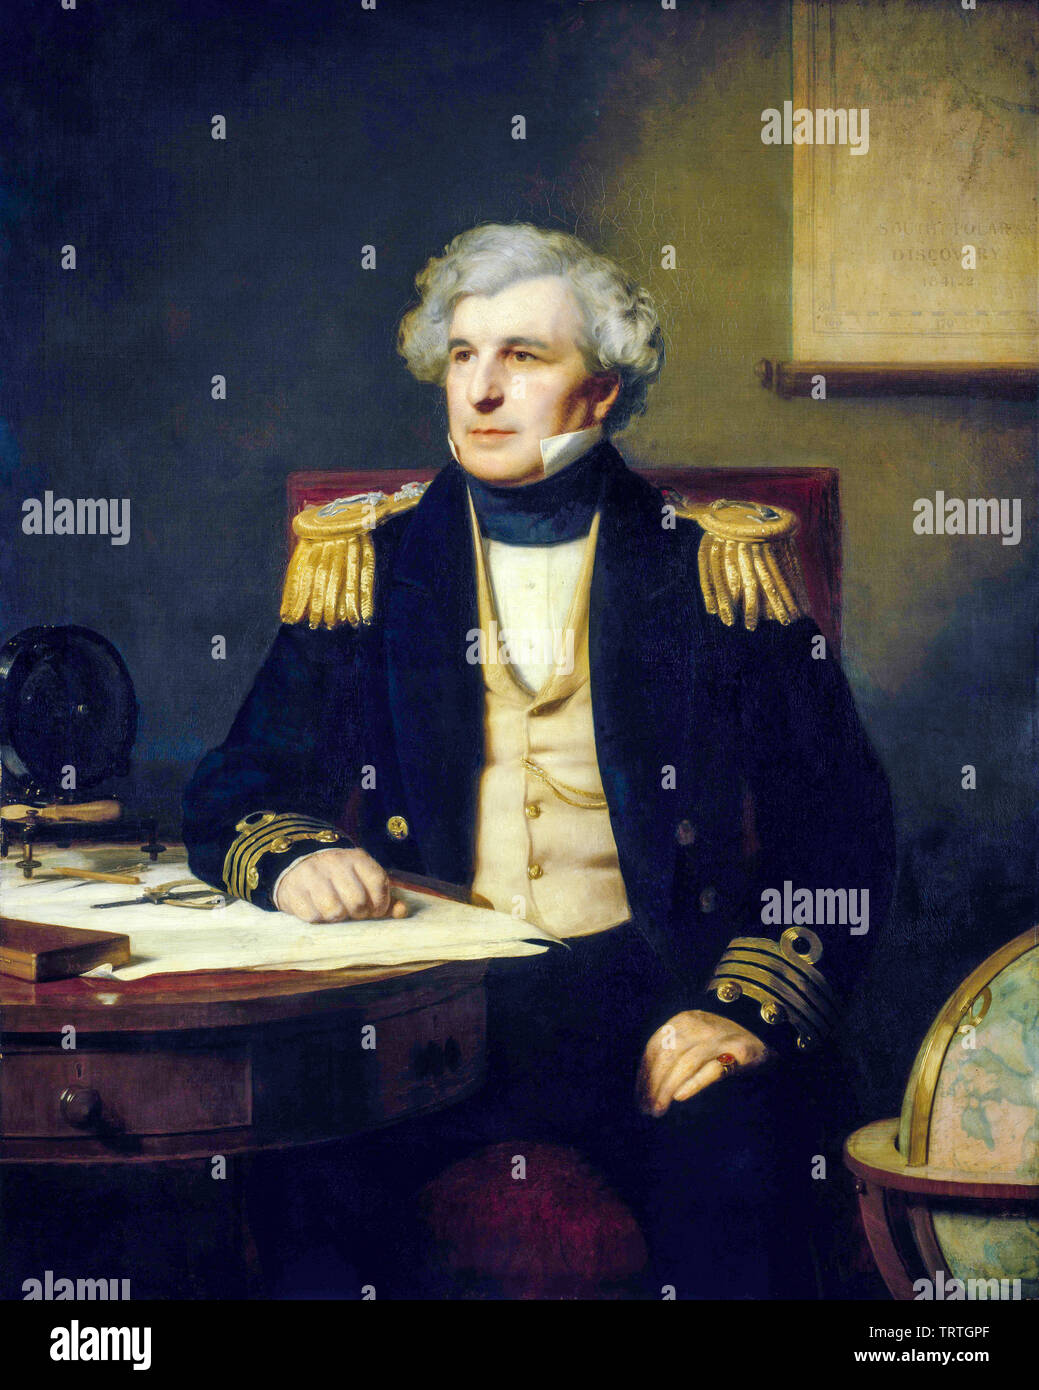 Captain Sir James Clark Ross, 1800-1862, portrait painting, 1871 - Stock Image